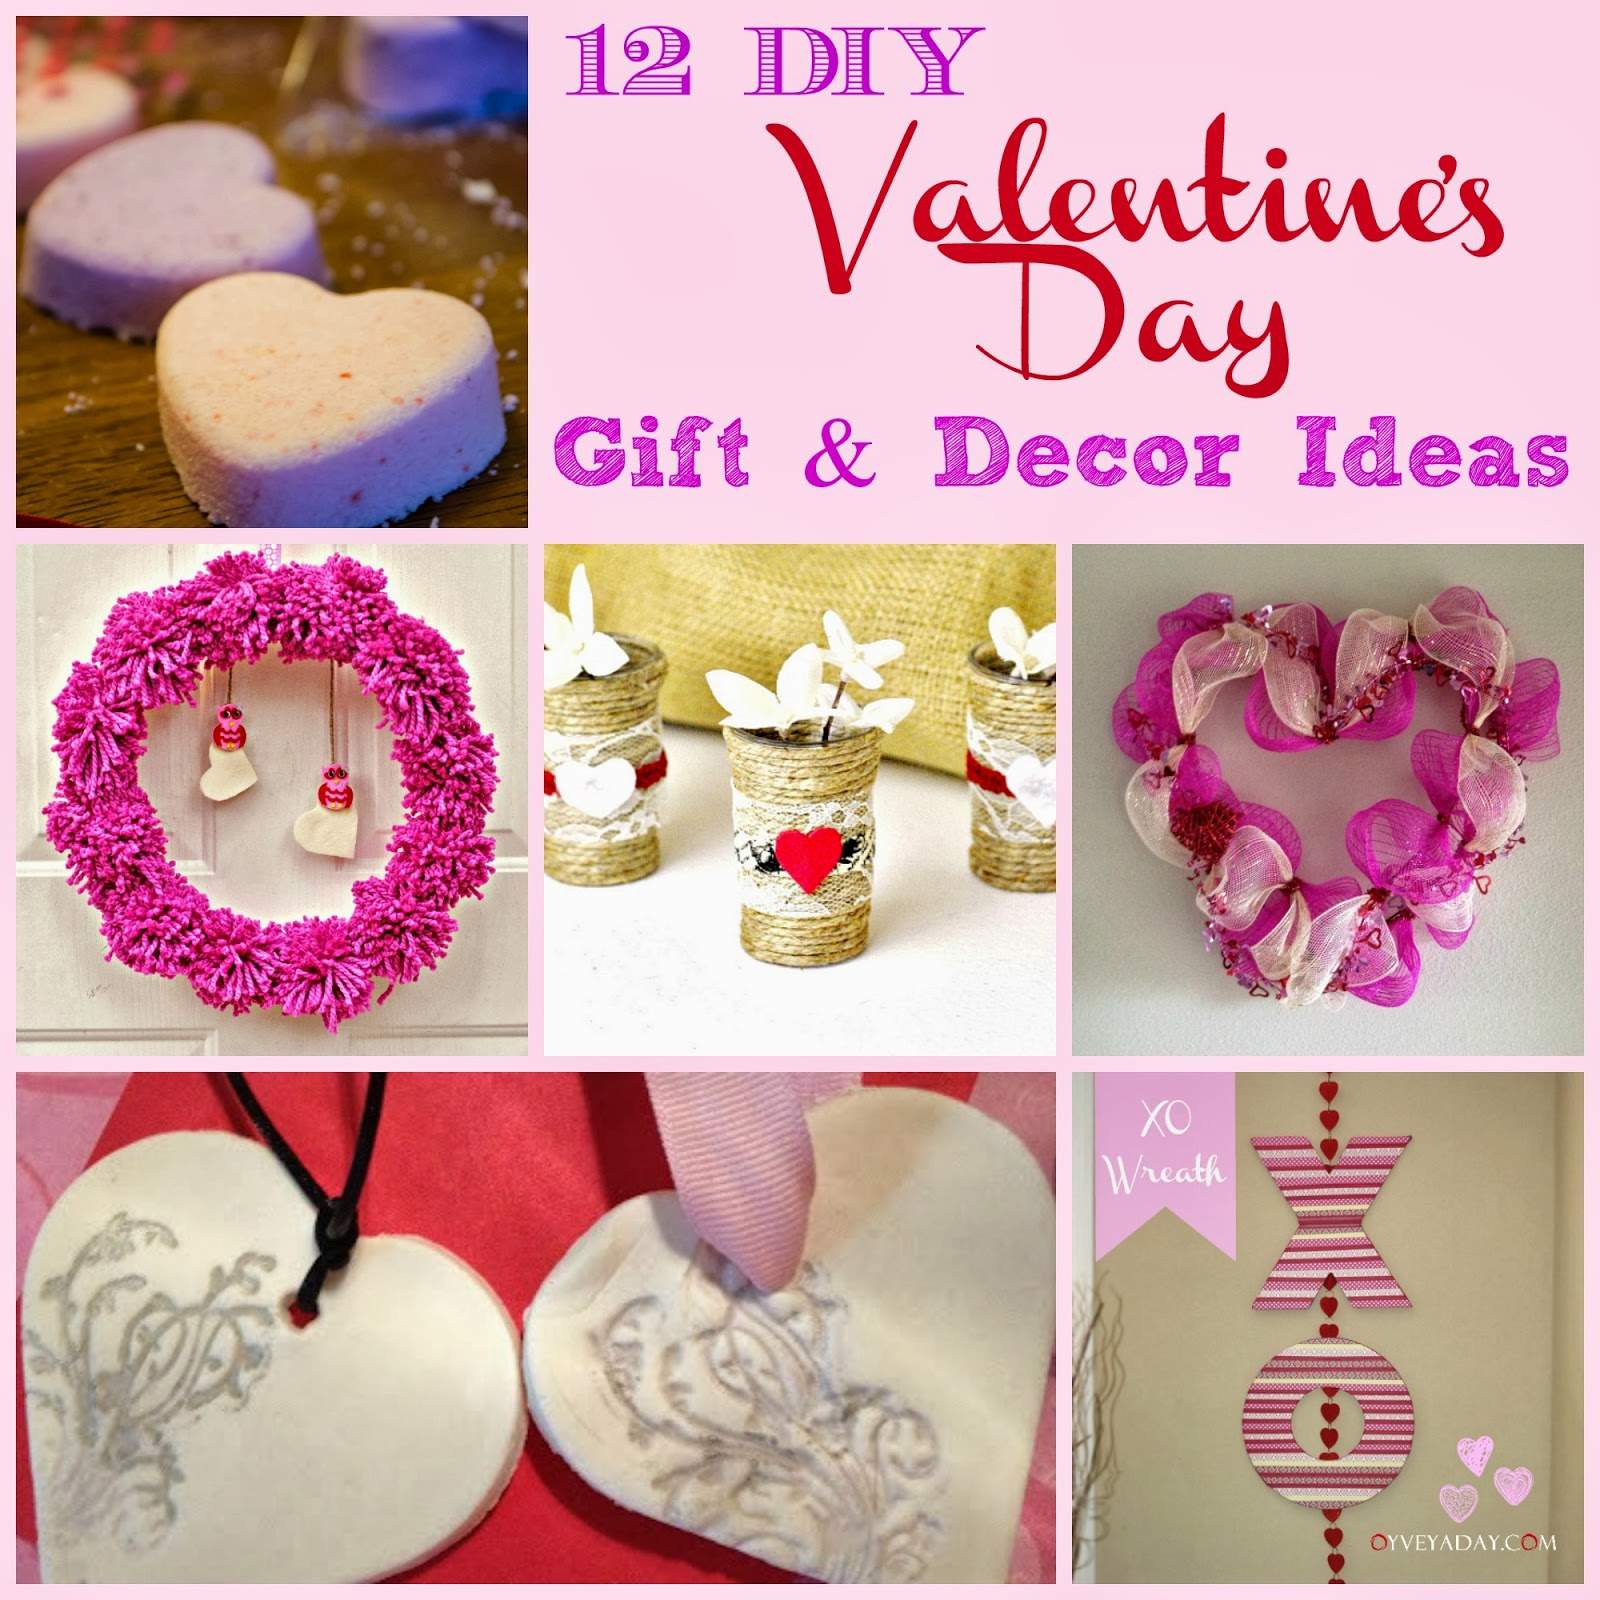 12 diy valentine u0027s day gift u0026 decor ideas outnumbered 3 to 1